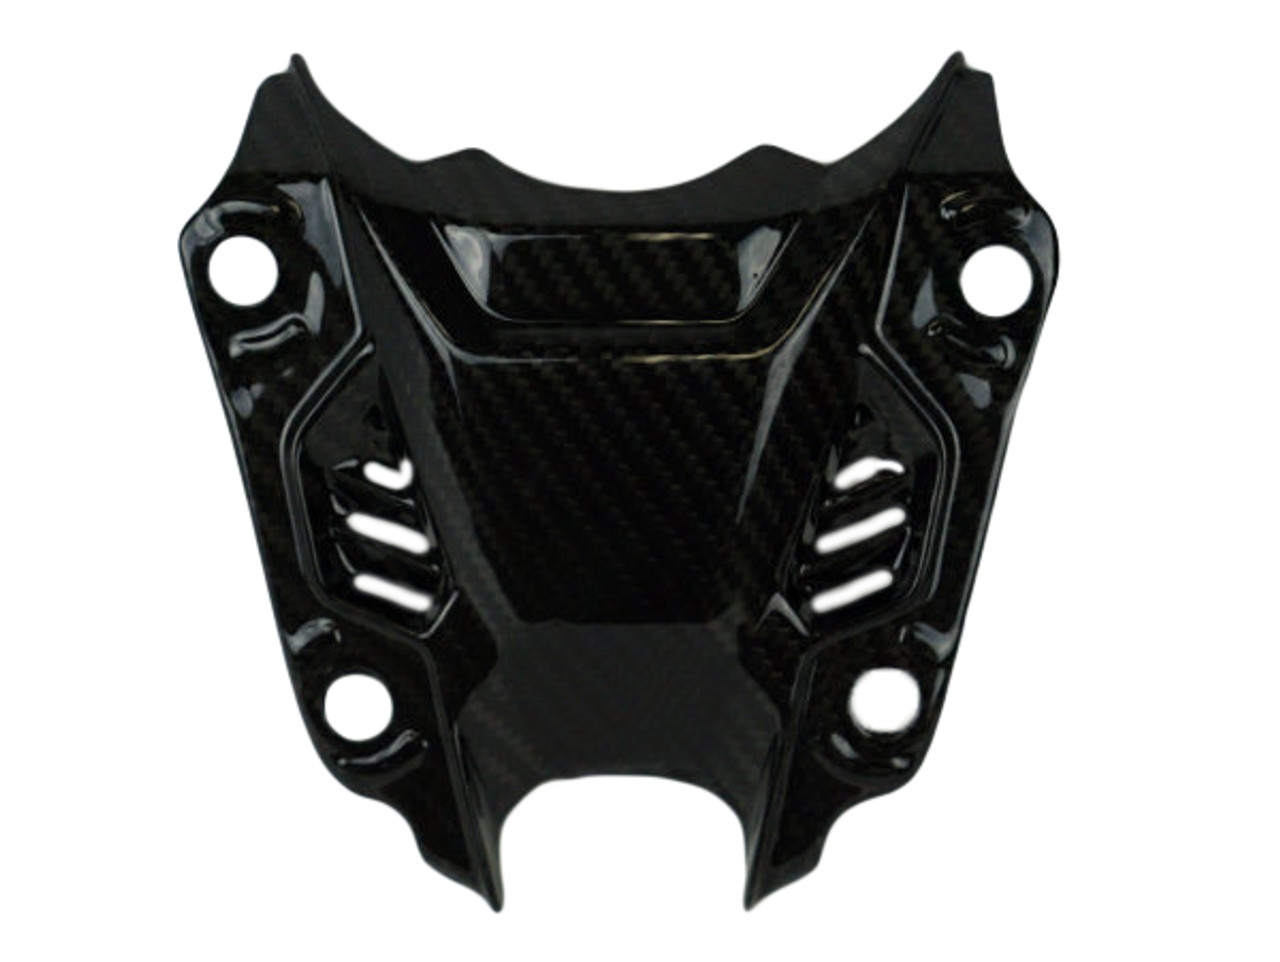 Top of the Headlight in Glossy Twill weave Carbon Fiber for Yamaha FZ-07/ MT-07